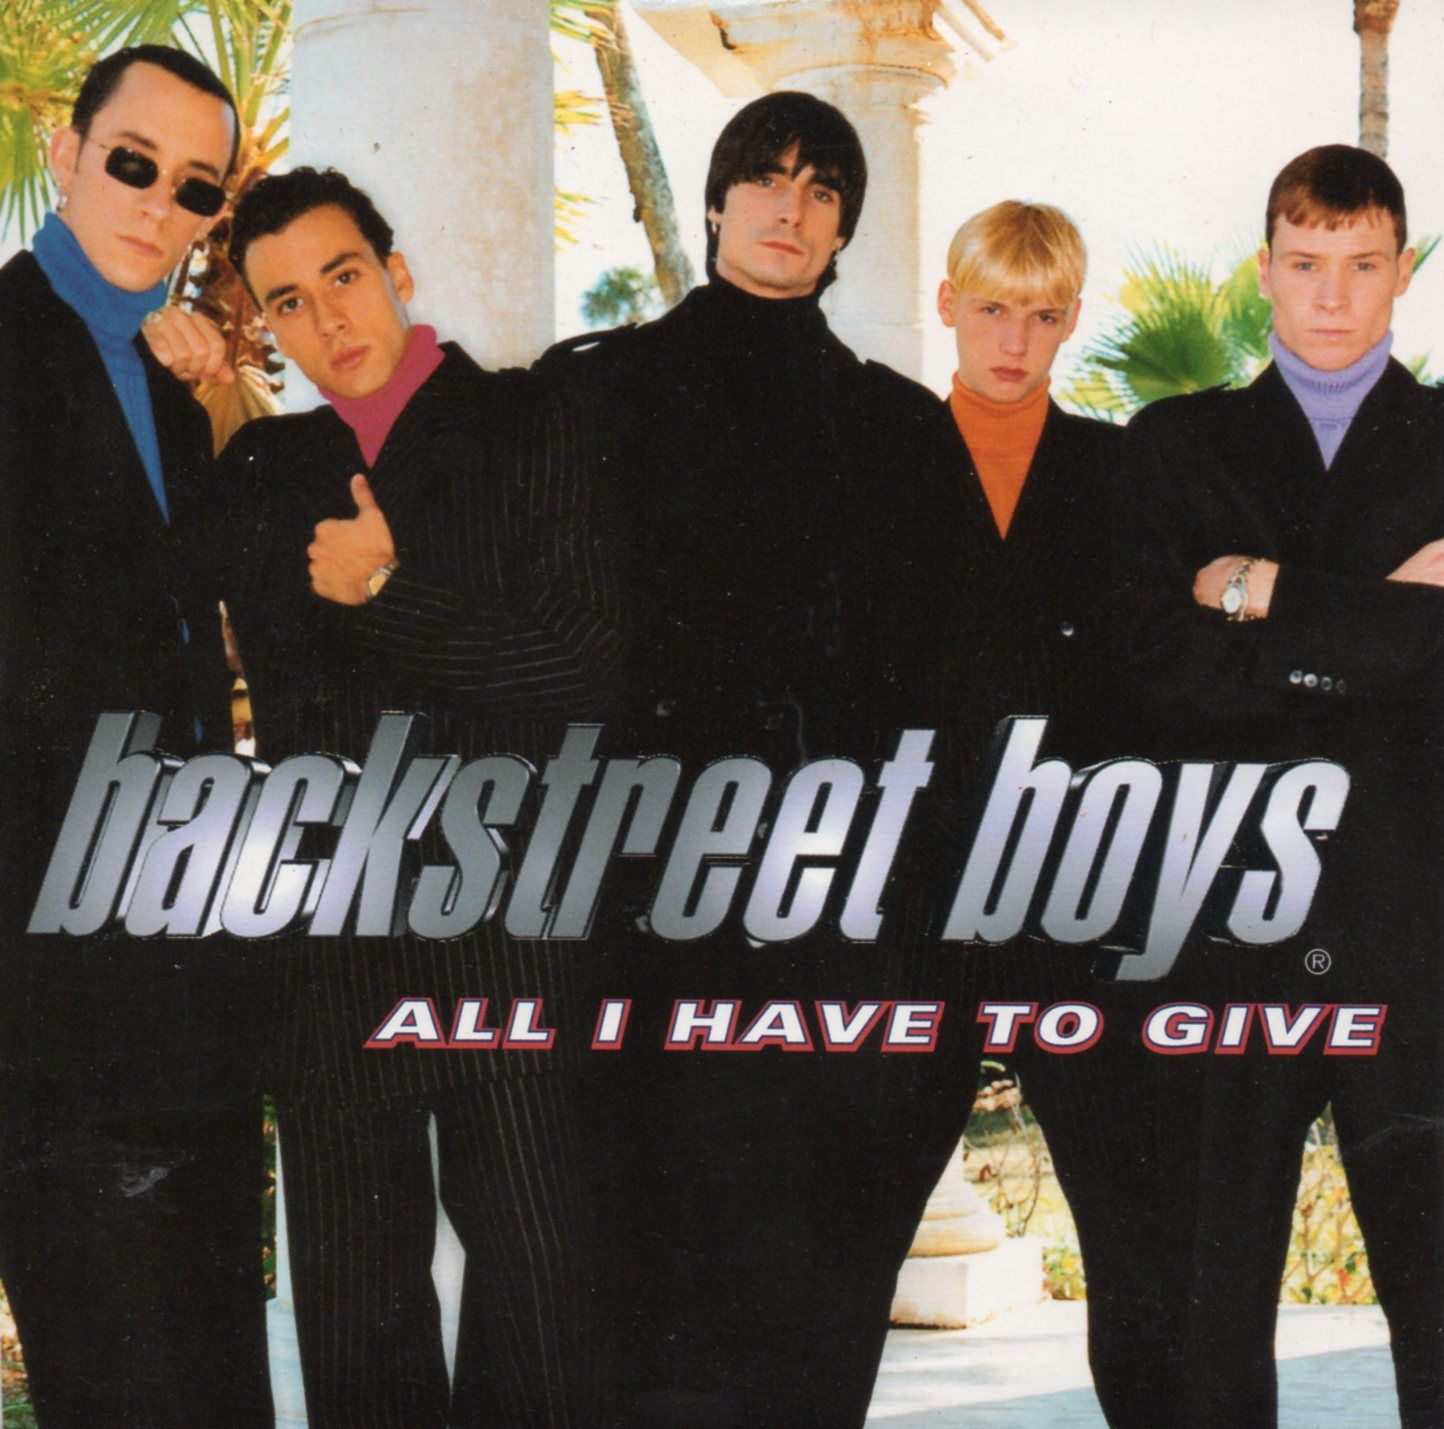 Songtext von Backstreet Boys - All I Have to Give Lyrics